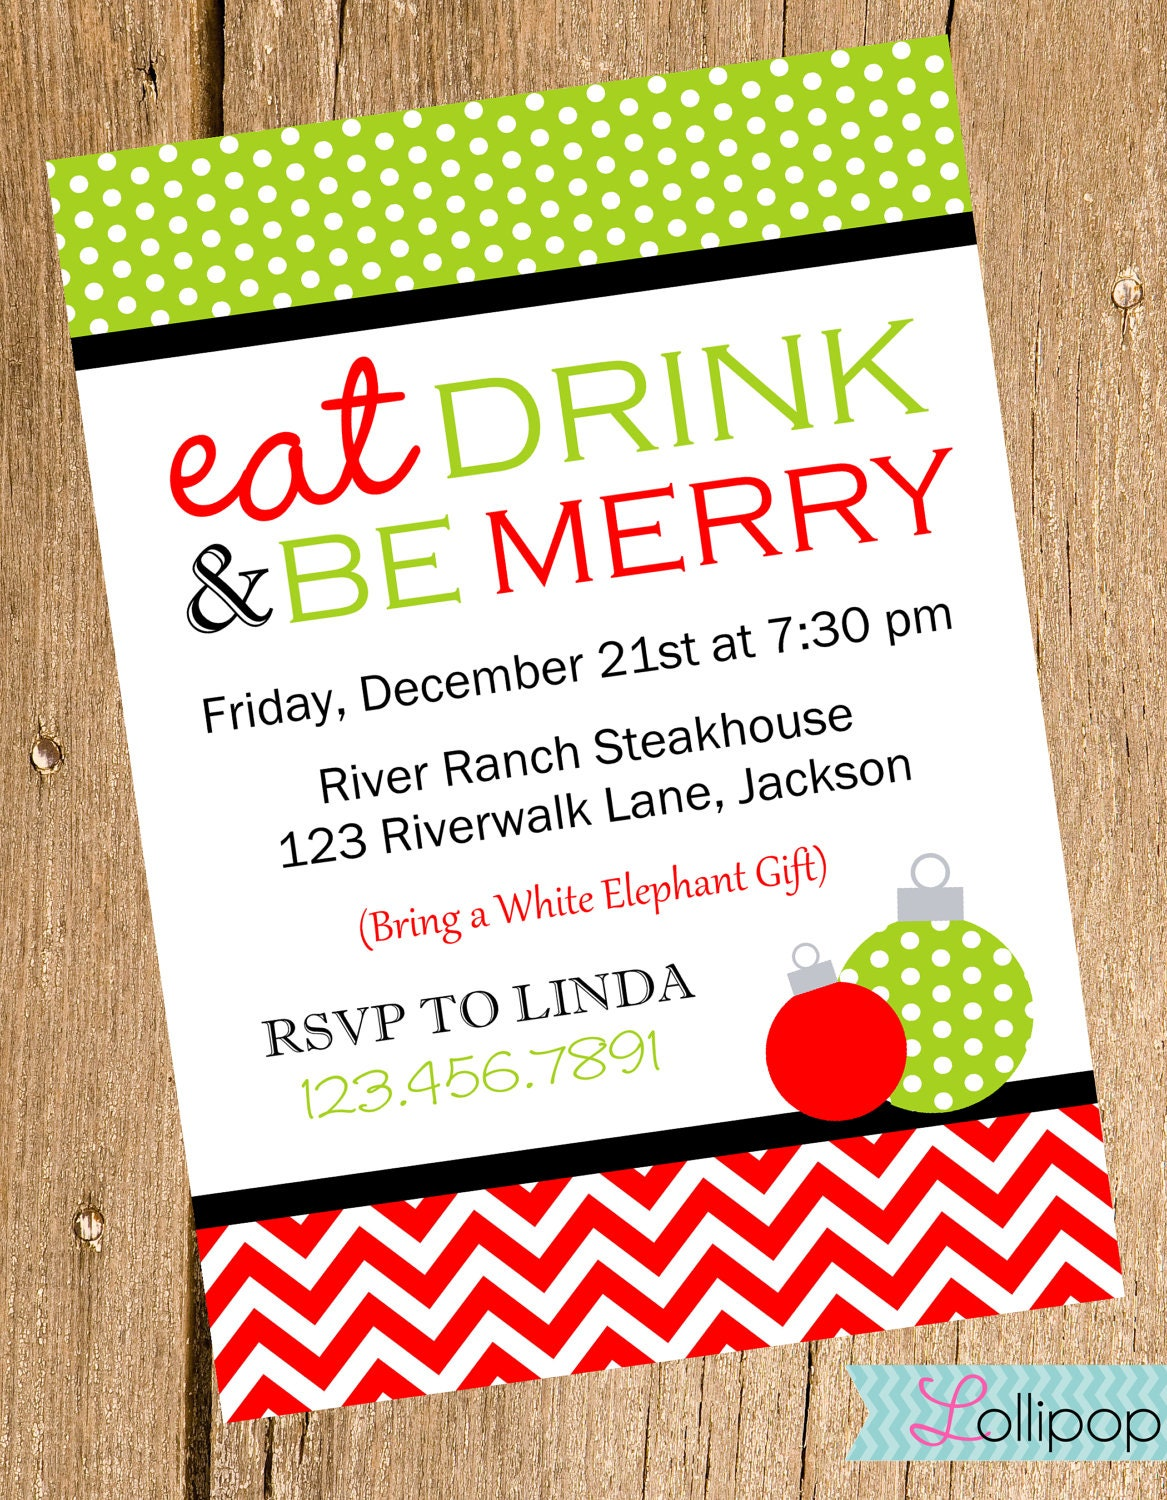 ... Holiday Christmas Party Invite, DIY Christmas Party Invitation on Etsy: www.etsy.com/listing/110262024/eat-drink-and-be-merry-christmas